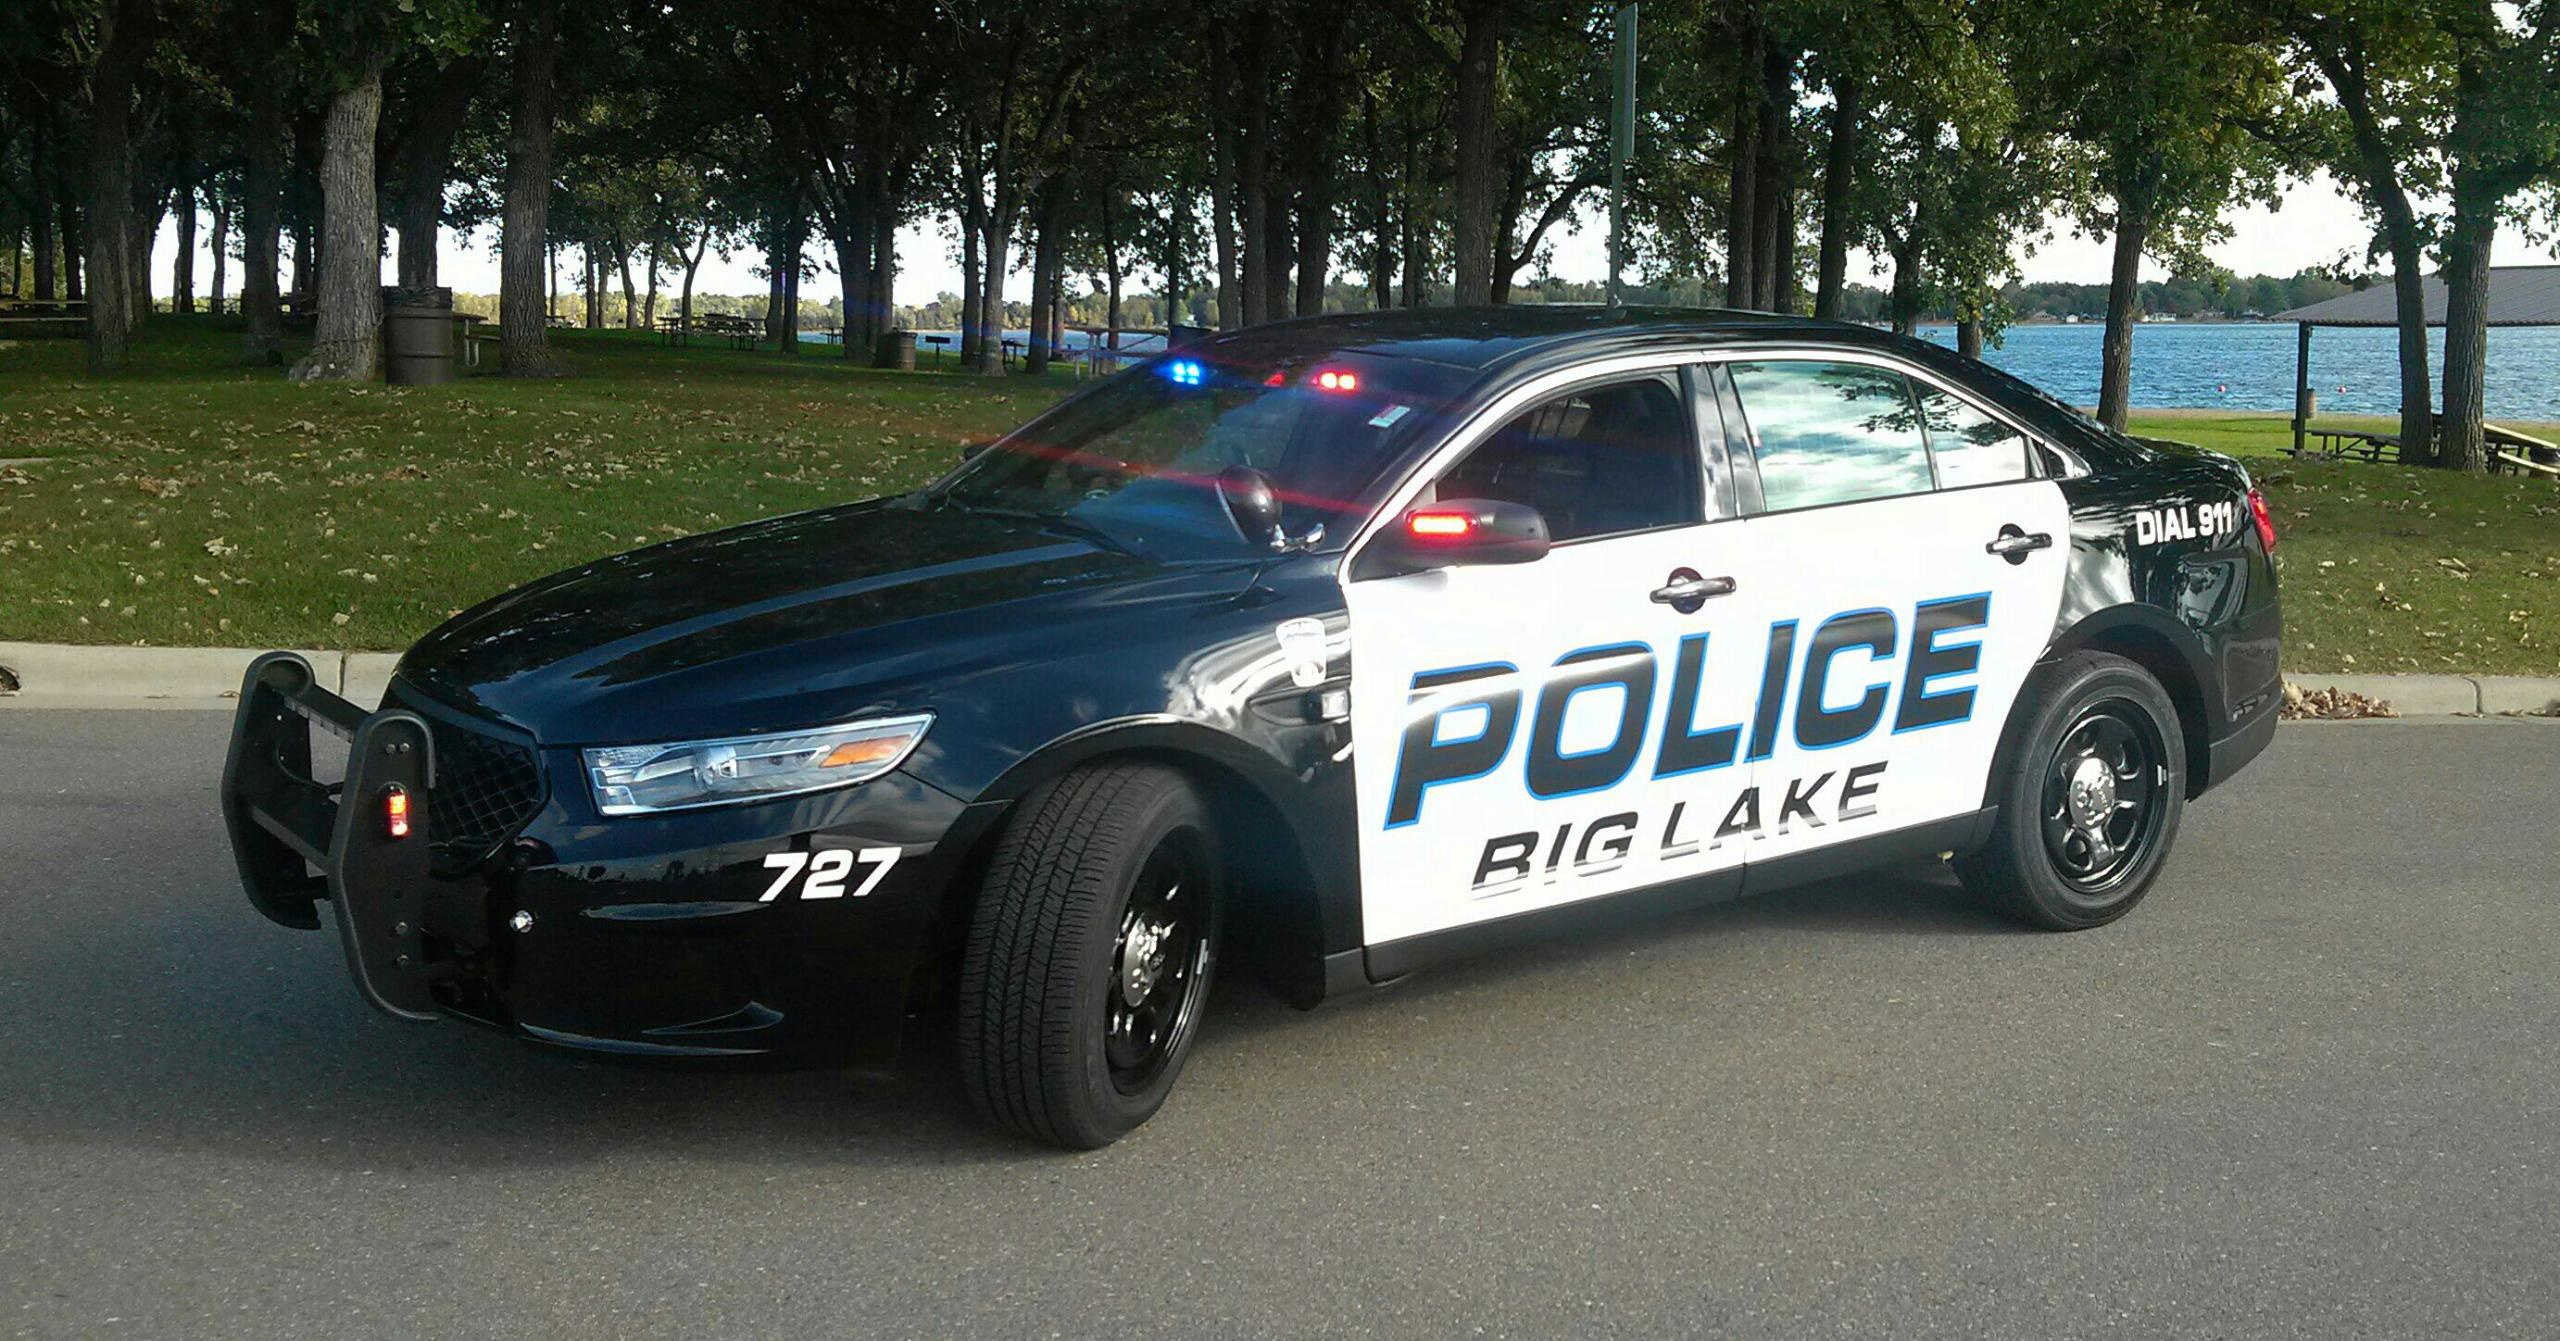 Police Car by a Lake 5